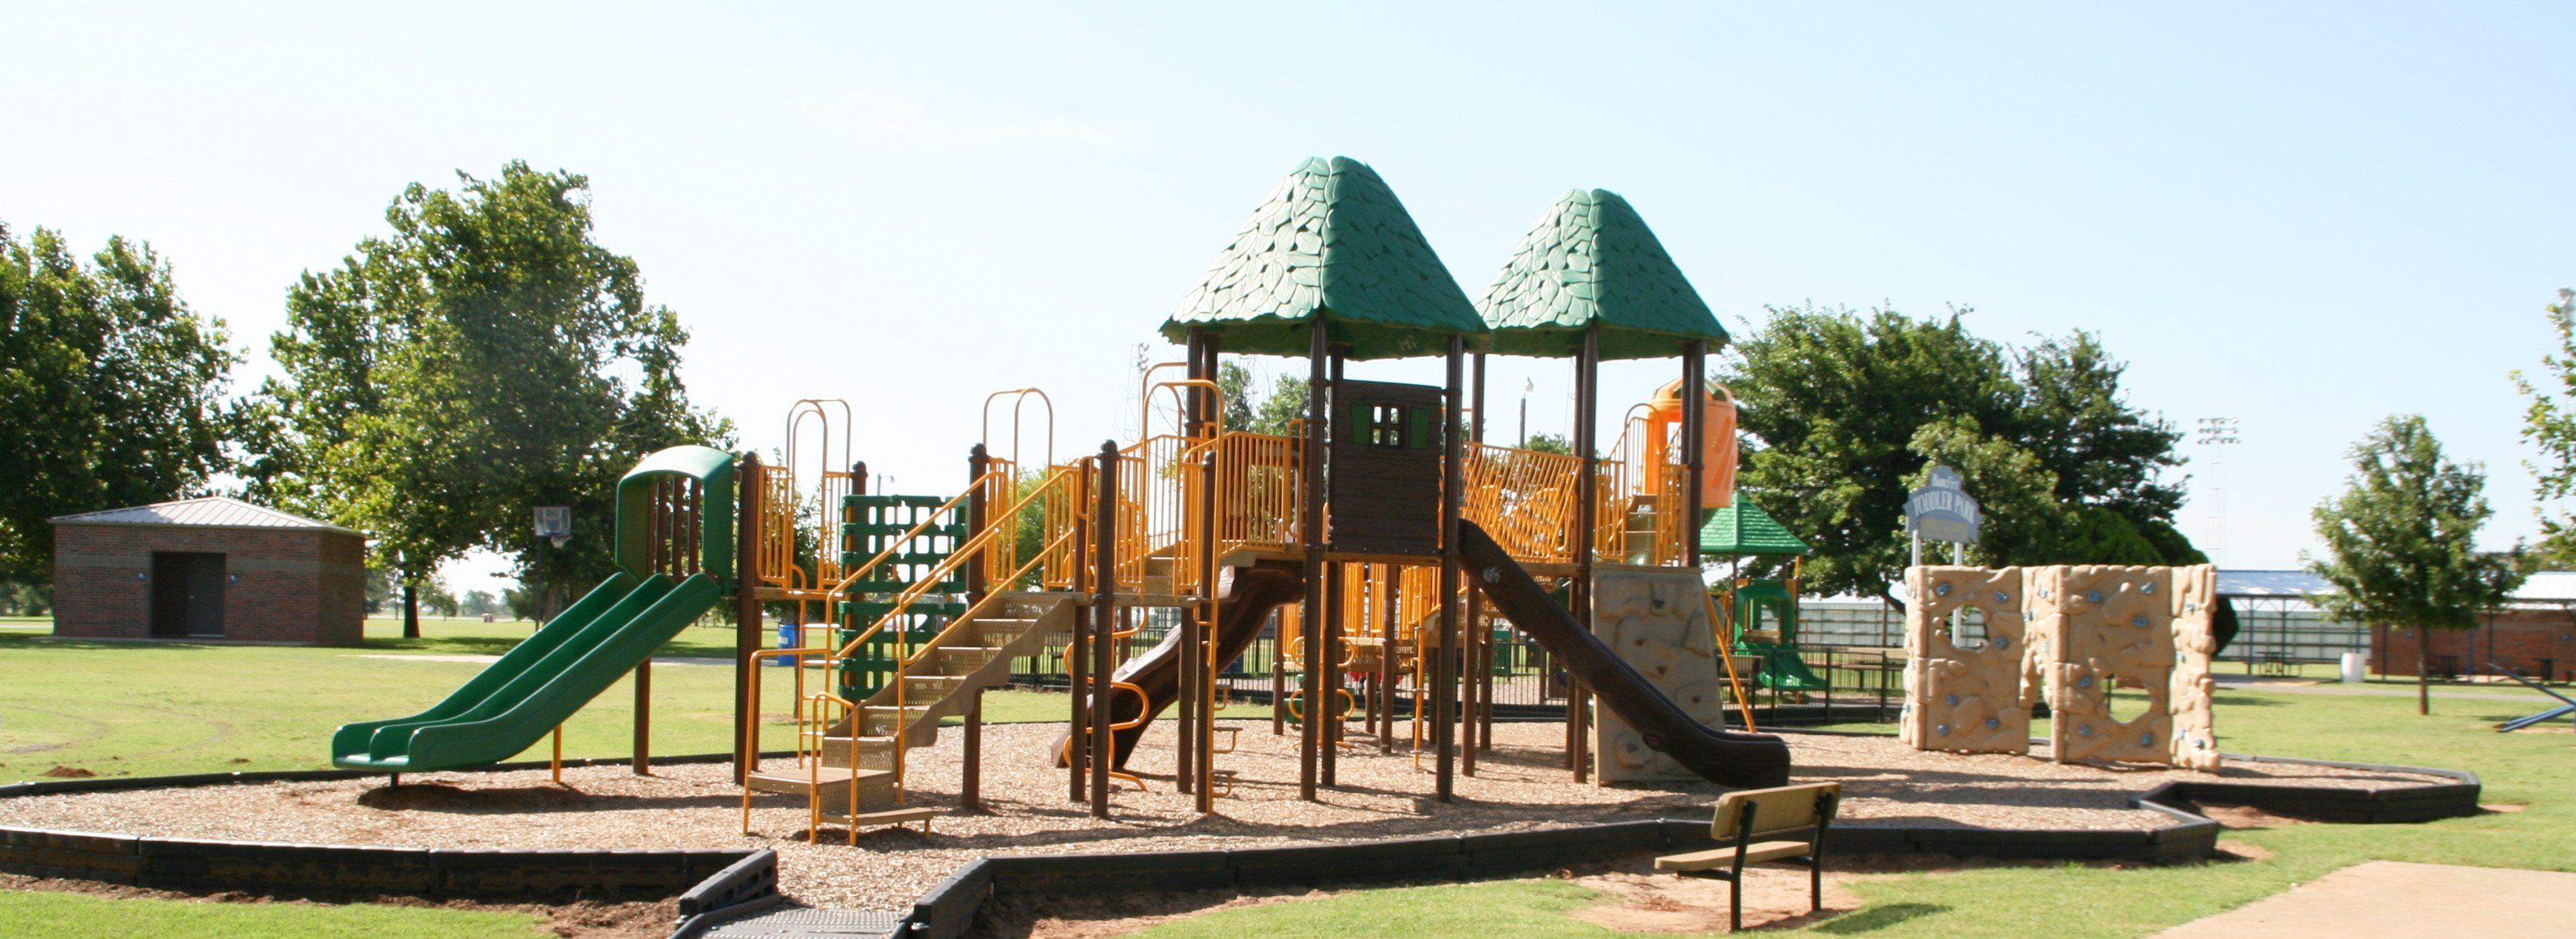 Rader Park's playground equipment